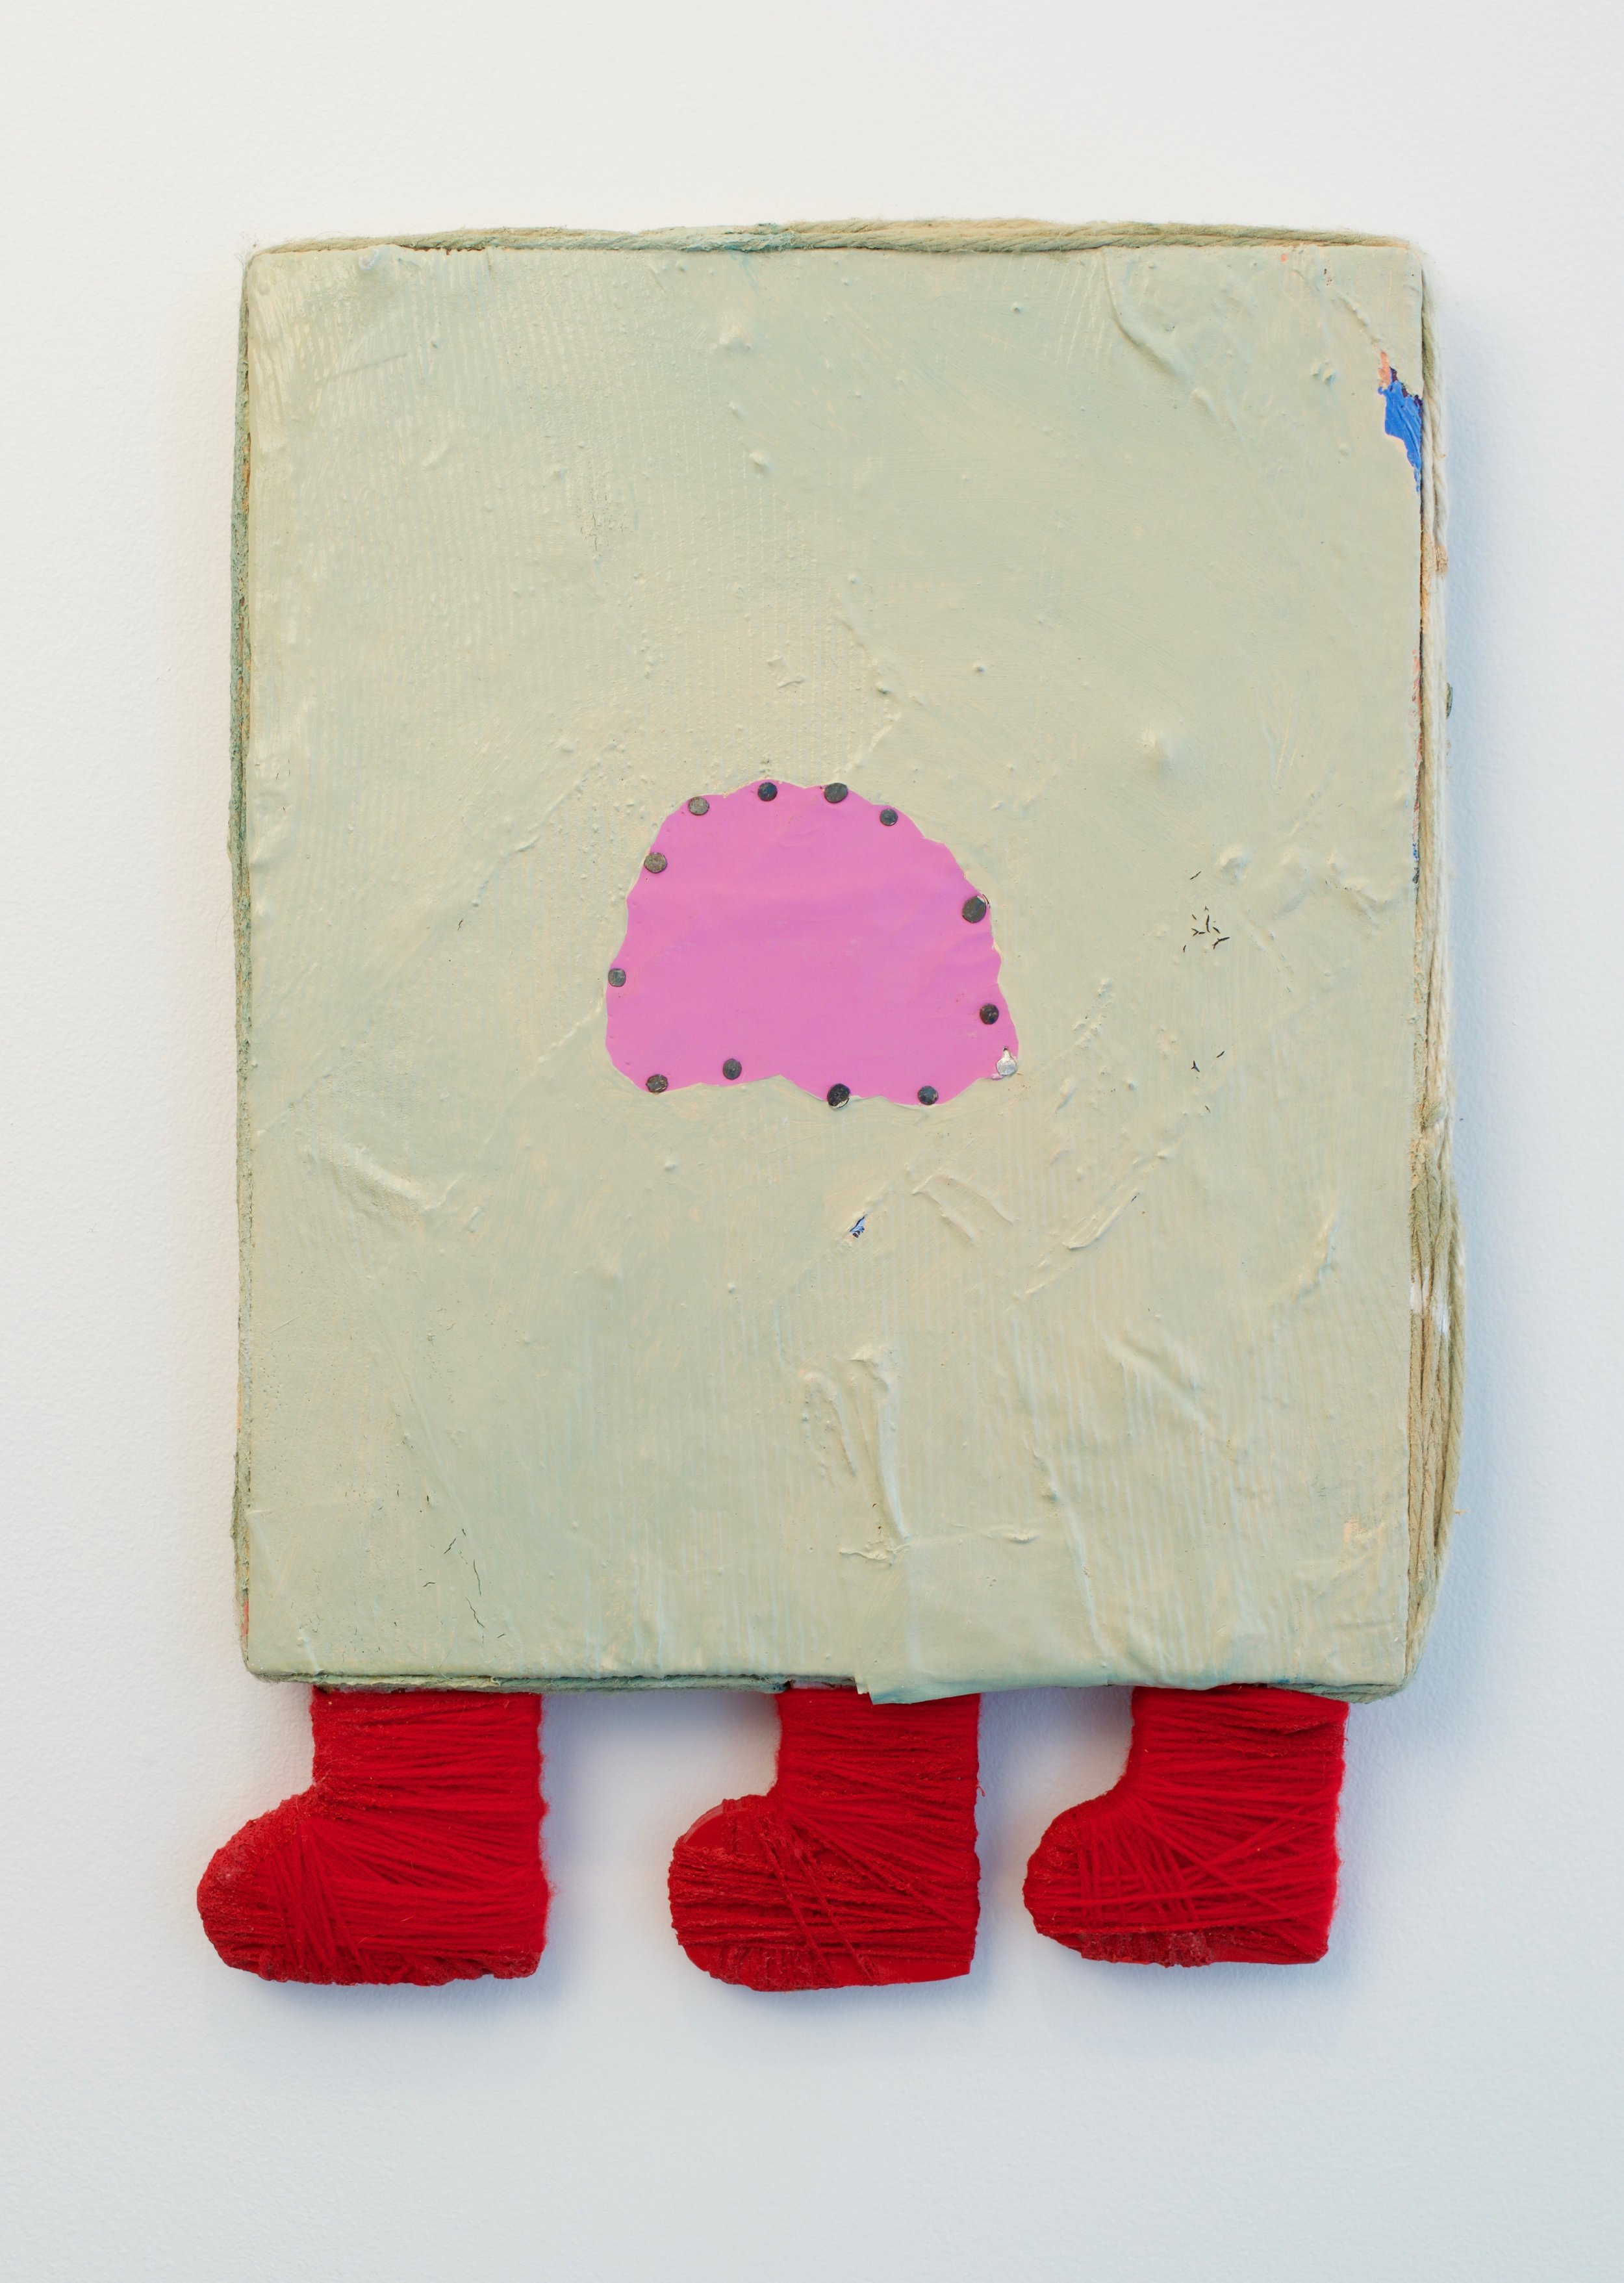 Jamey Hart, Walking on Mars, 2015. Acrylic, Fabric, Paper, Glue, String, Wood and other things. 19 x 13 inches.